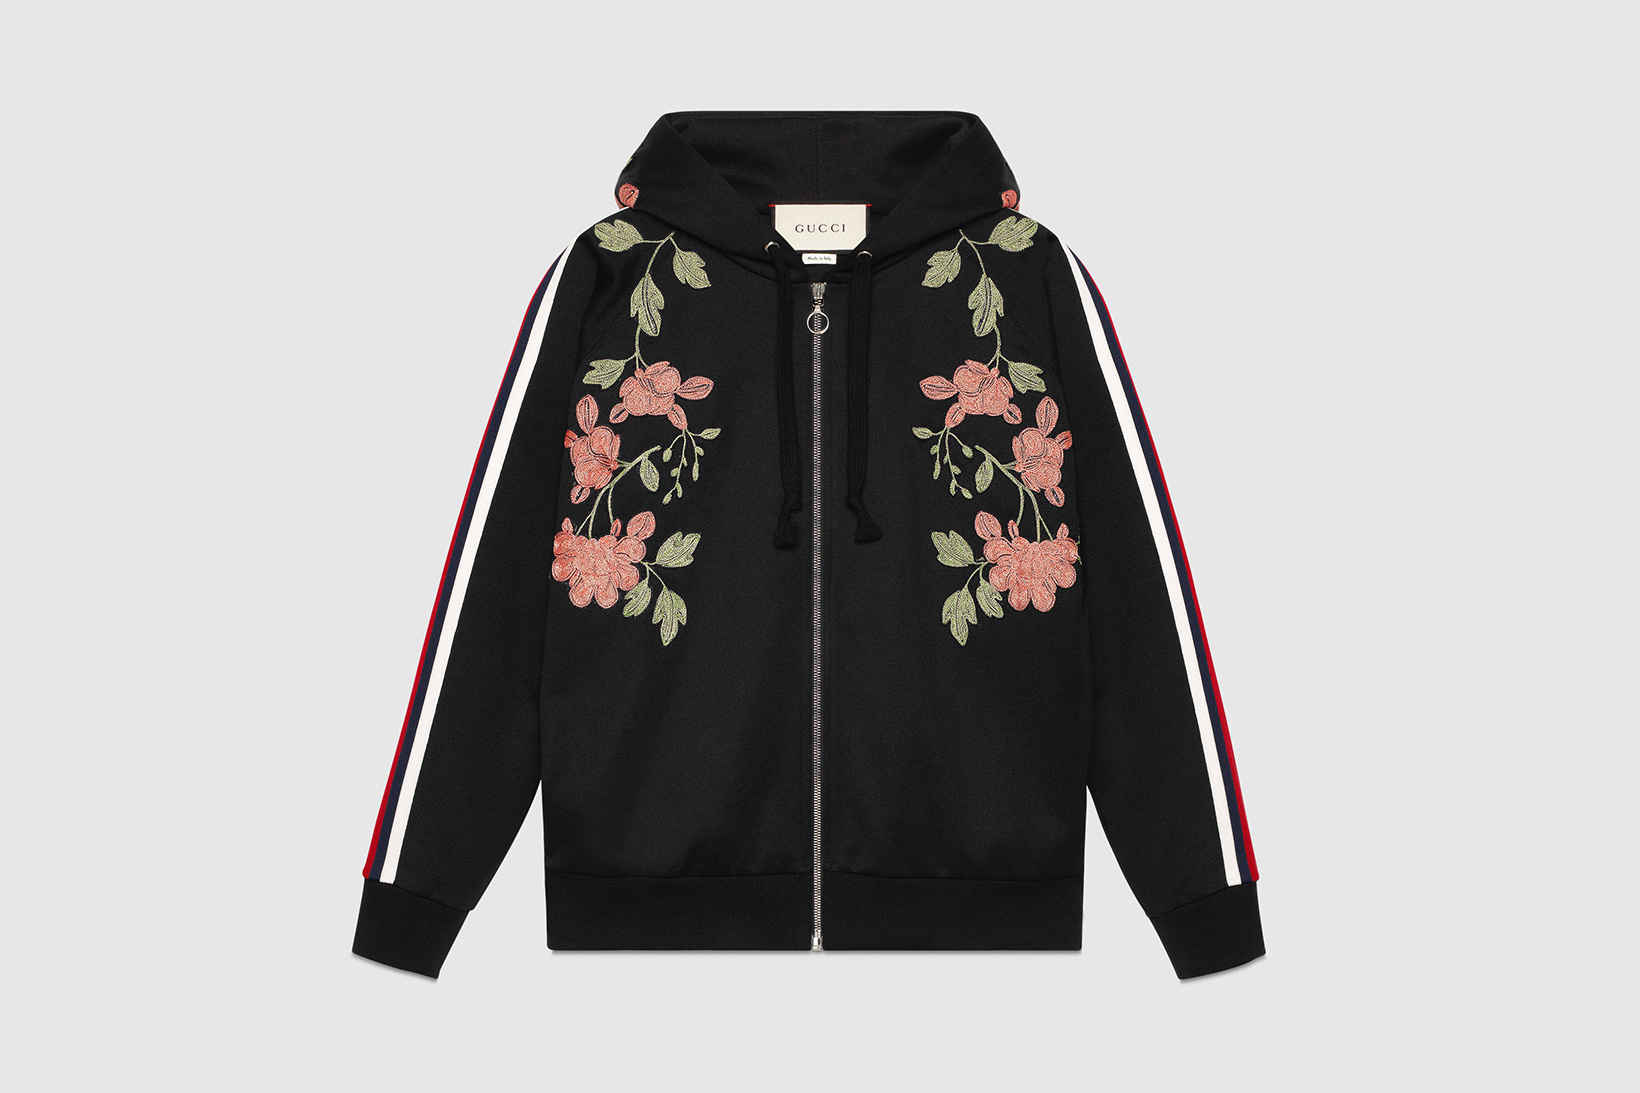 Gucci Tracksuits Lit Mefeater